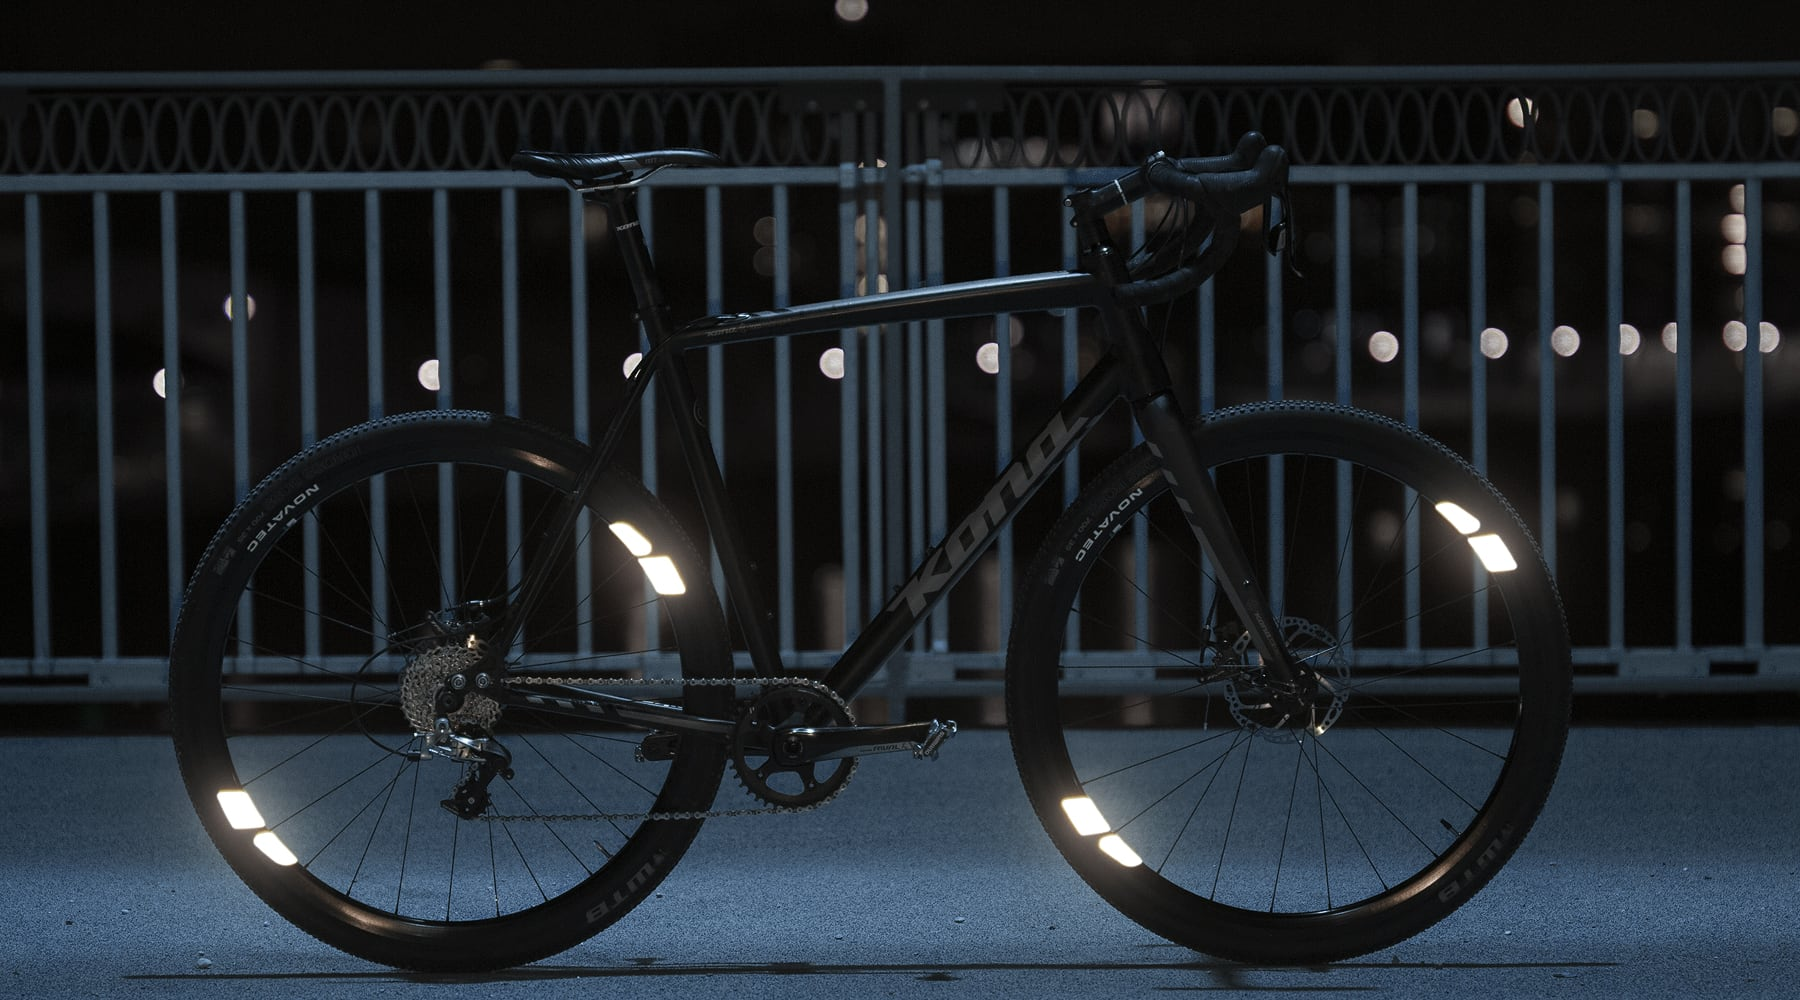 Flectr 360 bicycle reflectors - a reflective bike with high visibility and style